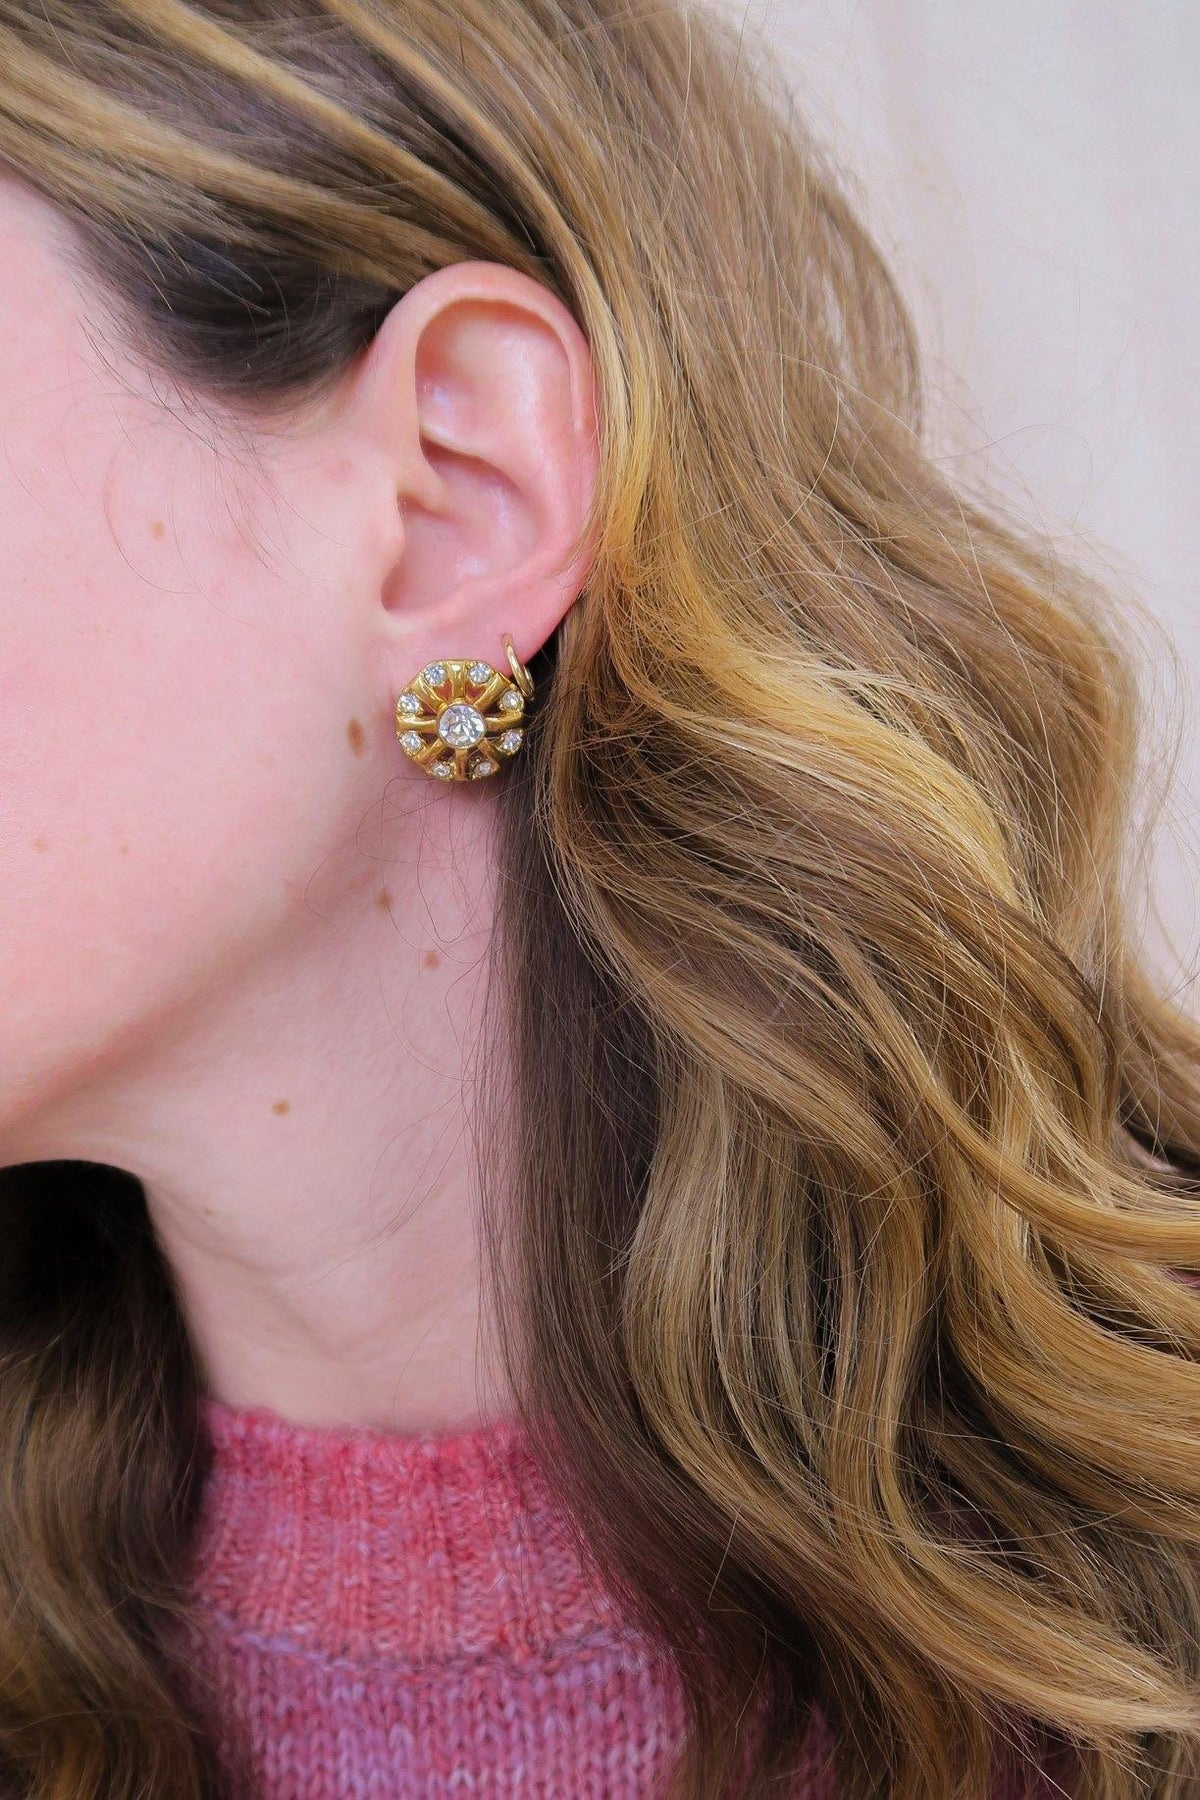 Vintage Monet round pierced earrings from Sweet & Spark.